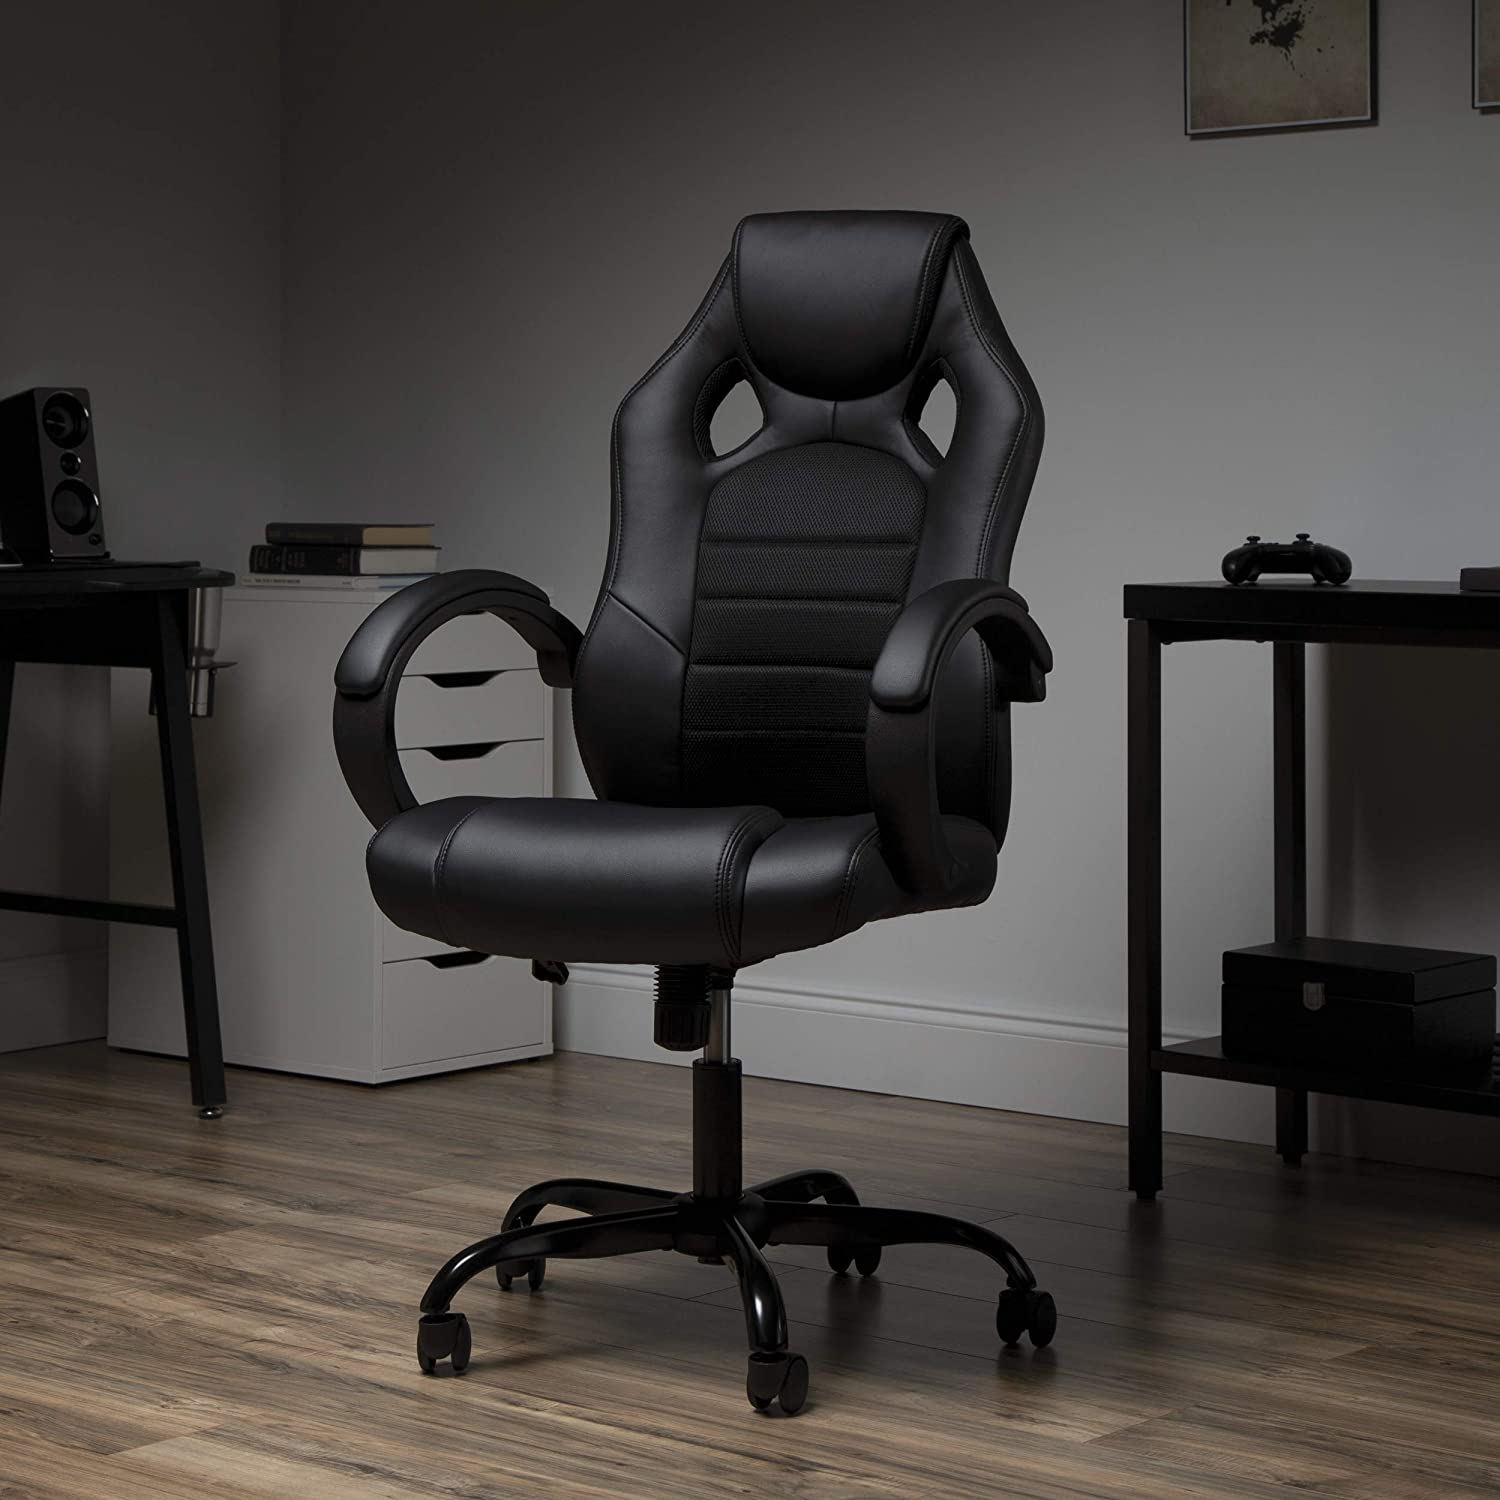 OFM ESS Collection High-Back Sale price Gaming Chair Arms Padded Bla Loop 70% OFF Outlet